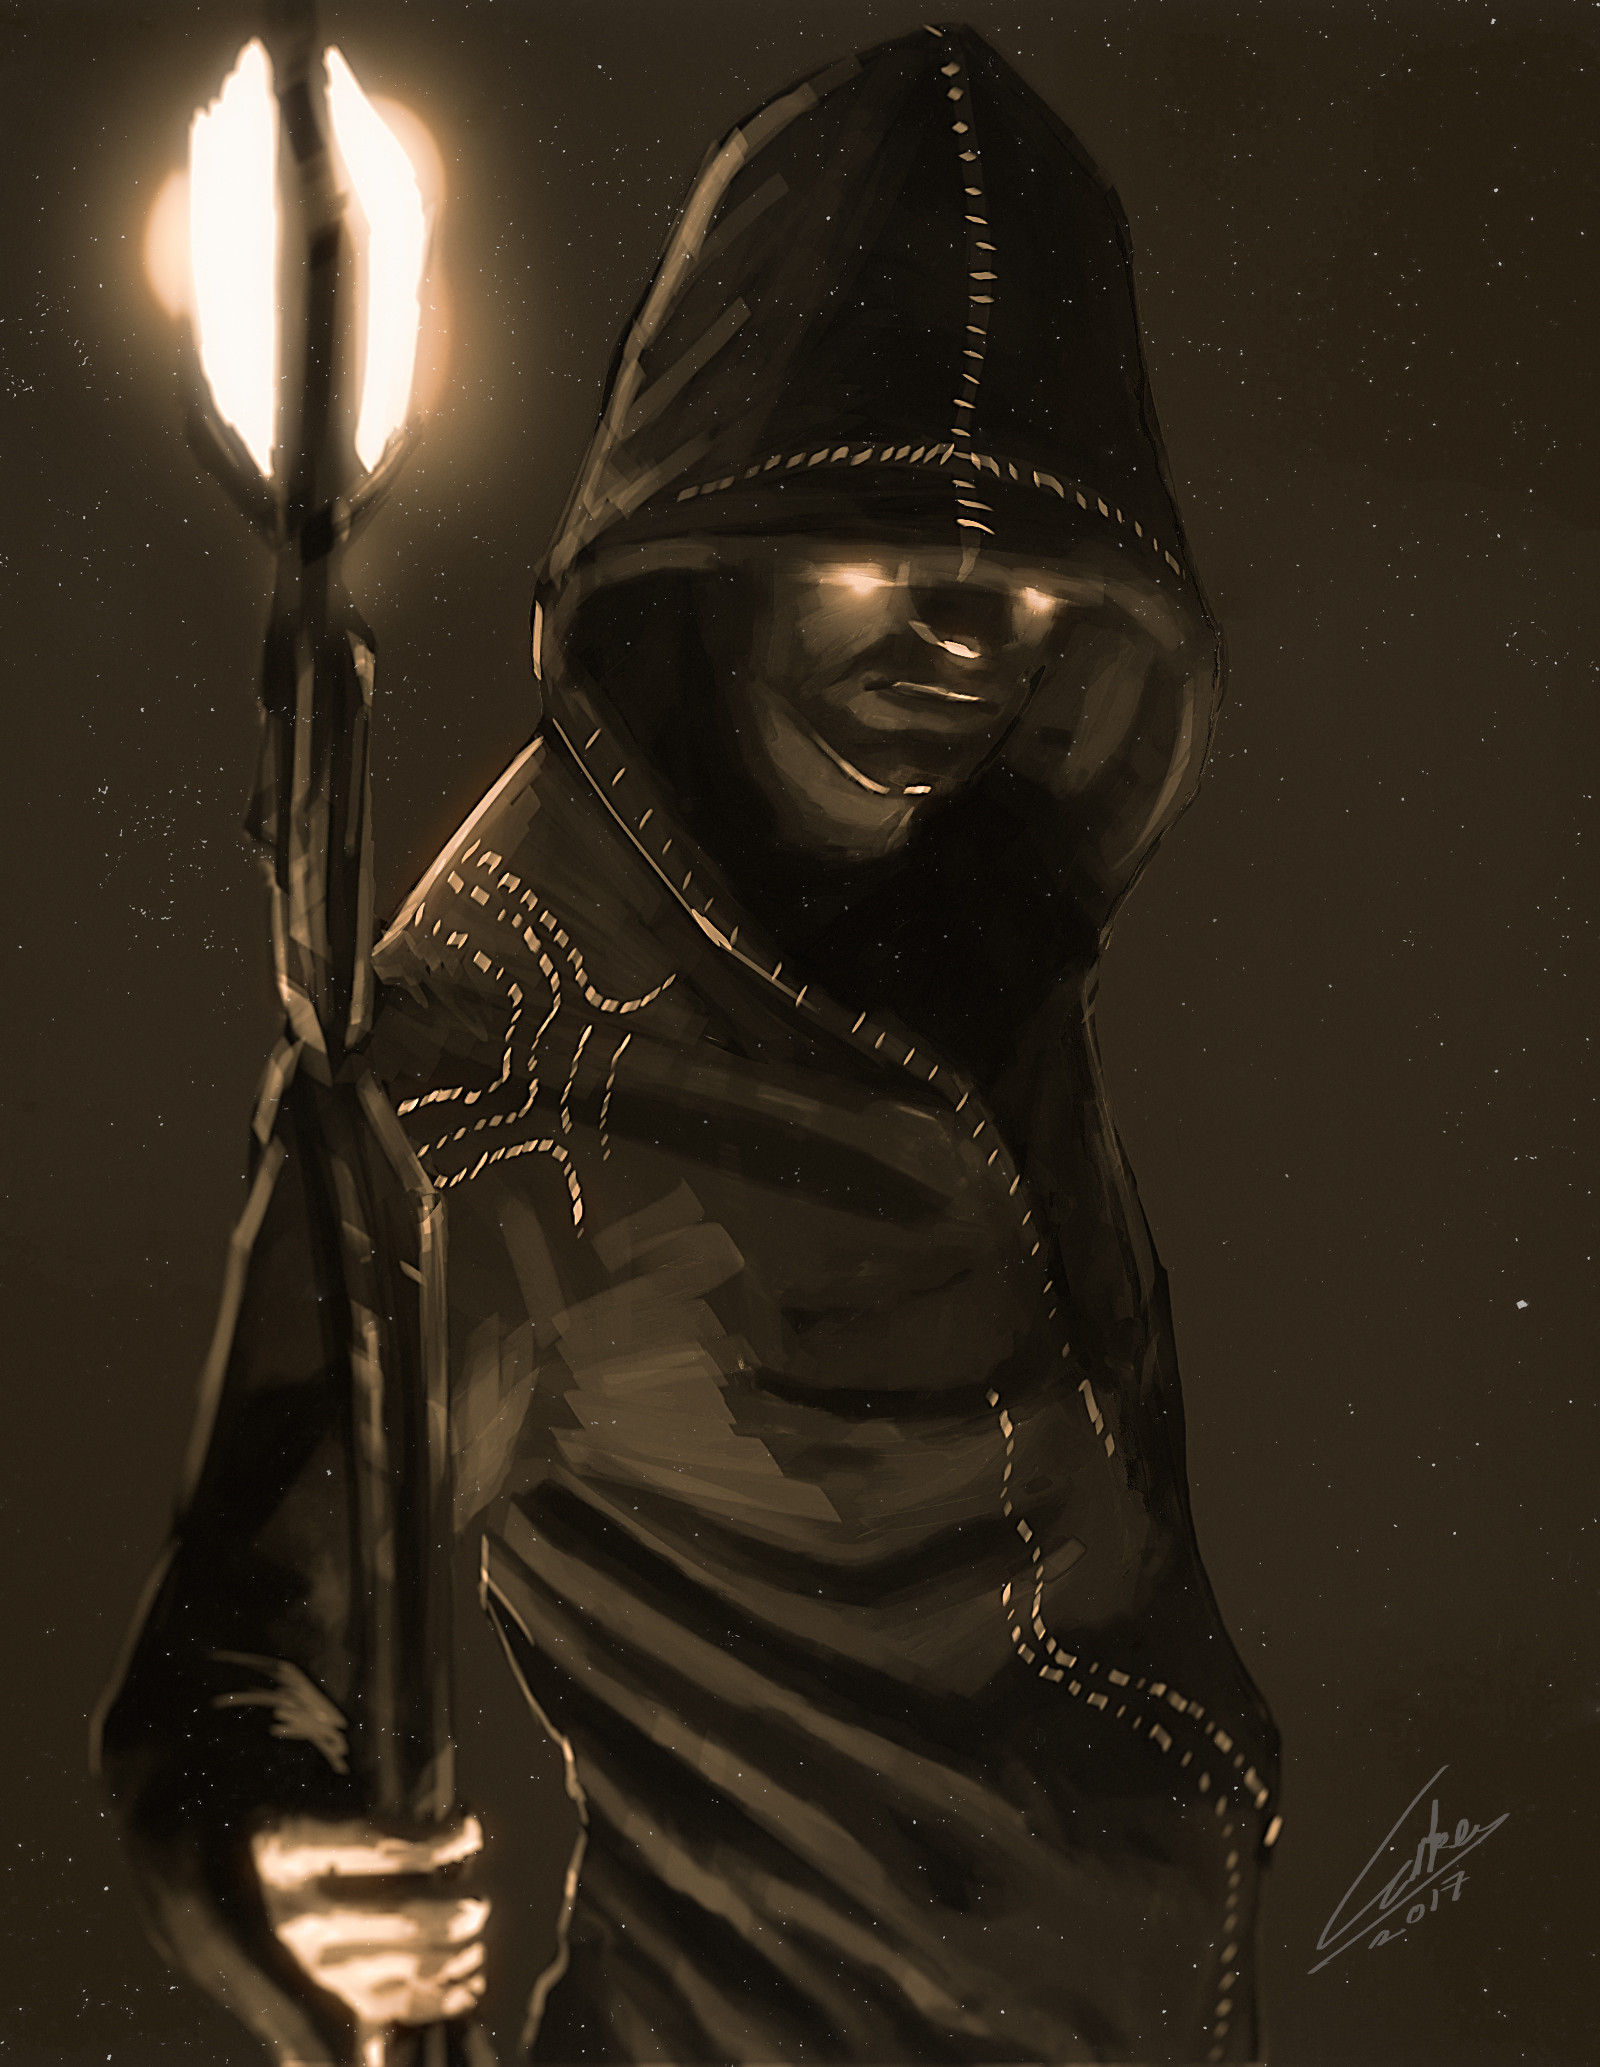 Bugra erke spitpaint demon priest may